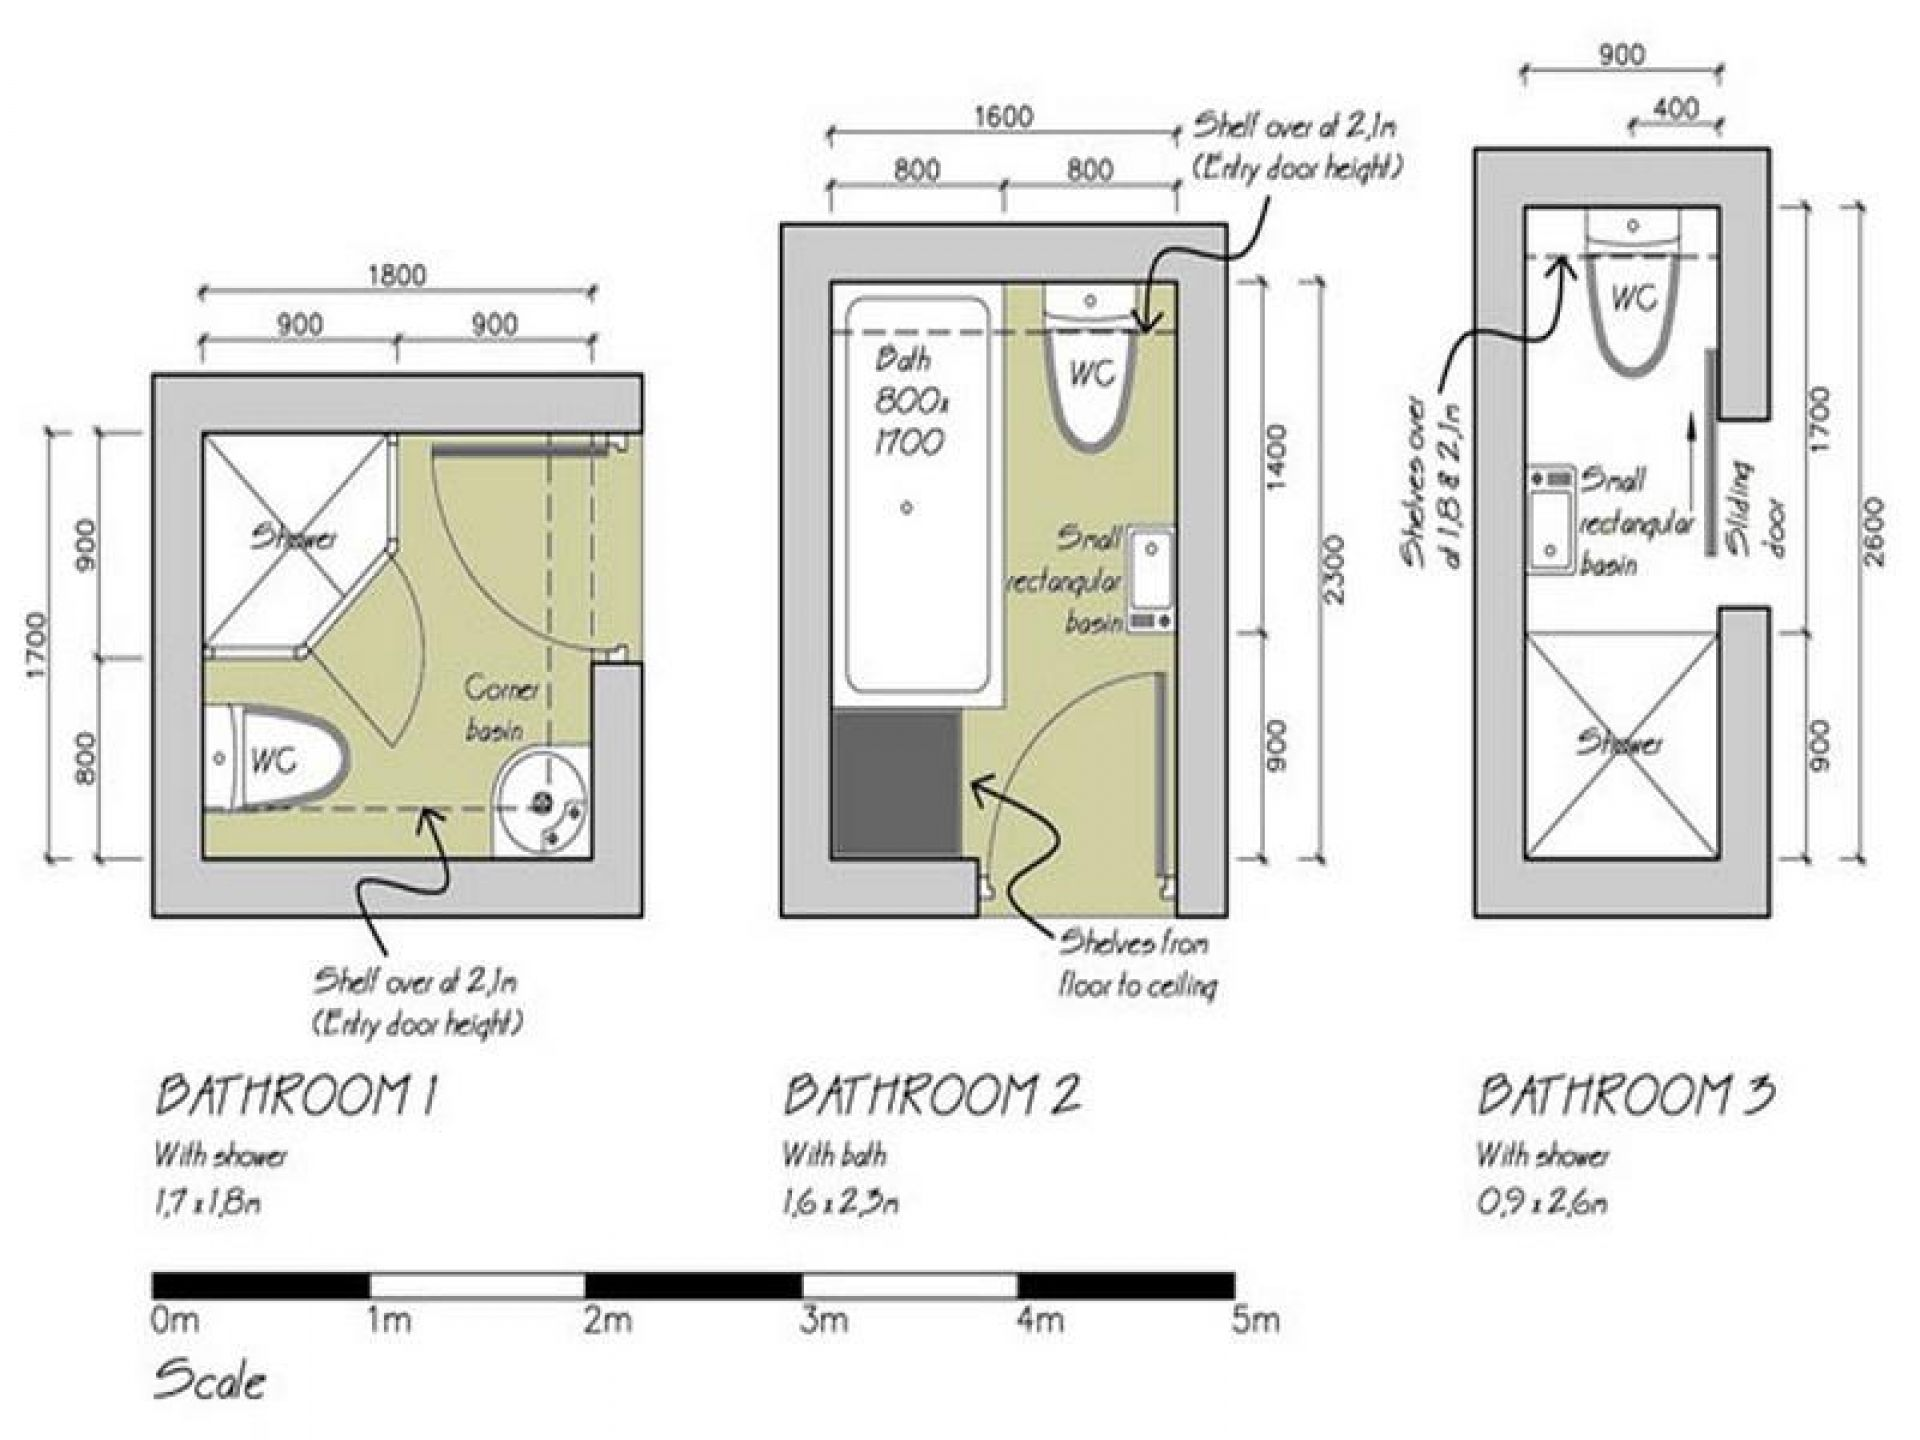 Very small bathroom floor plans - Epic Small Bathroom Floor Plans With Small Bathtub And Single Toilet Sink Beside